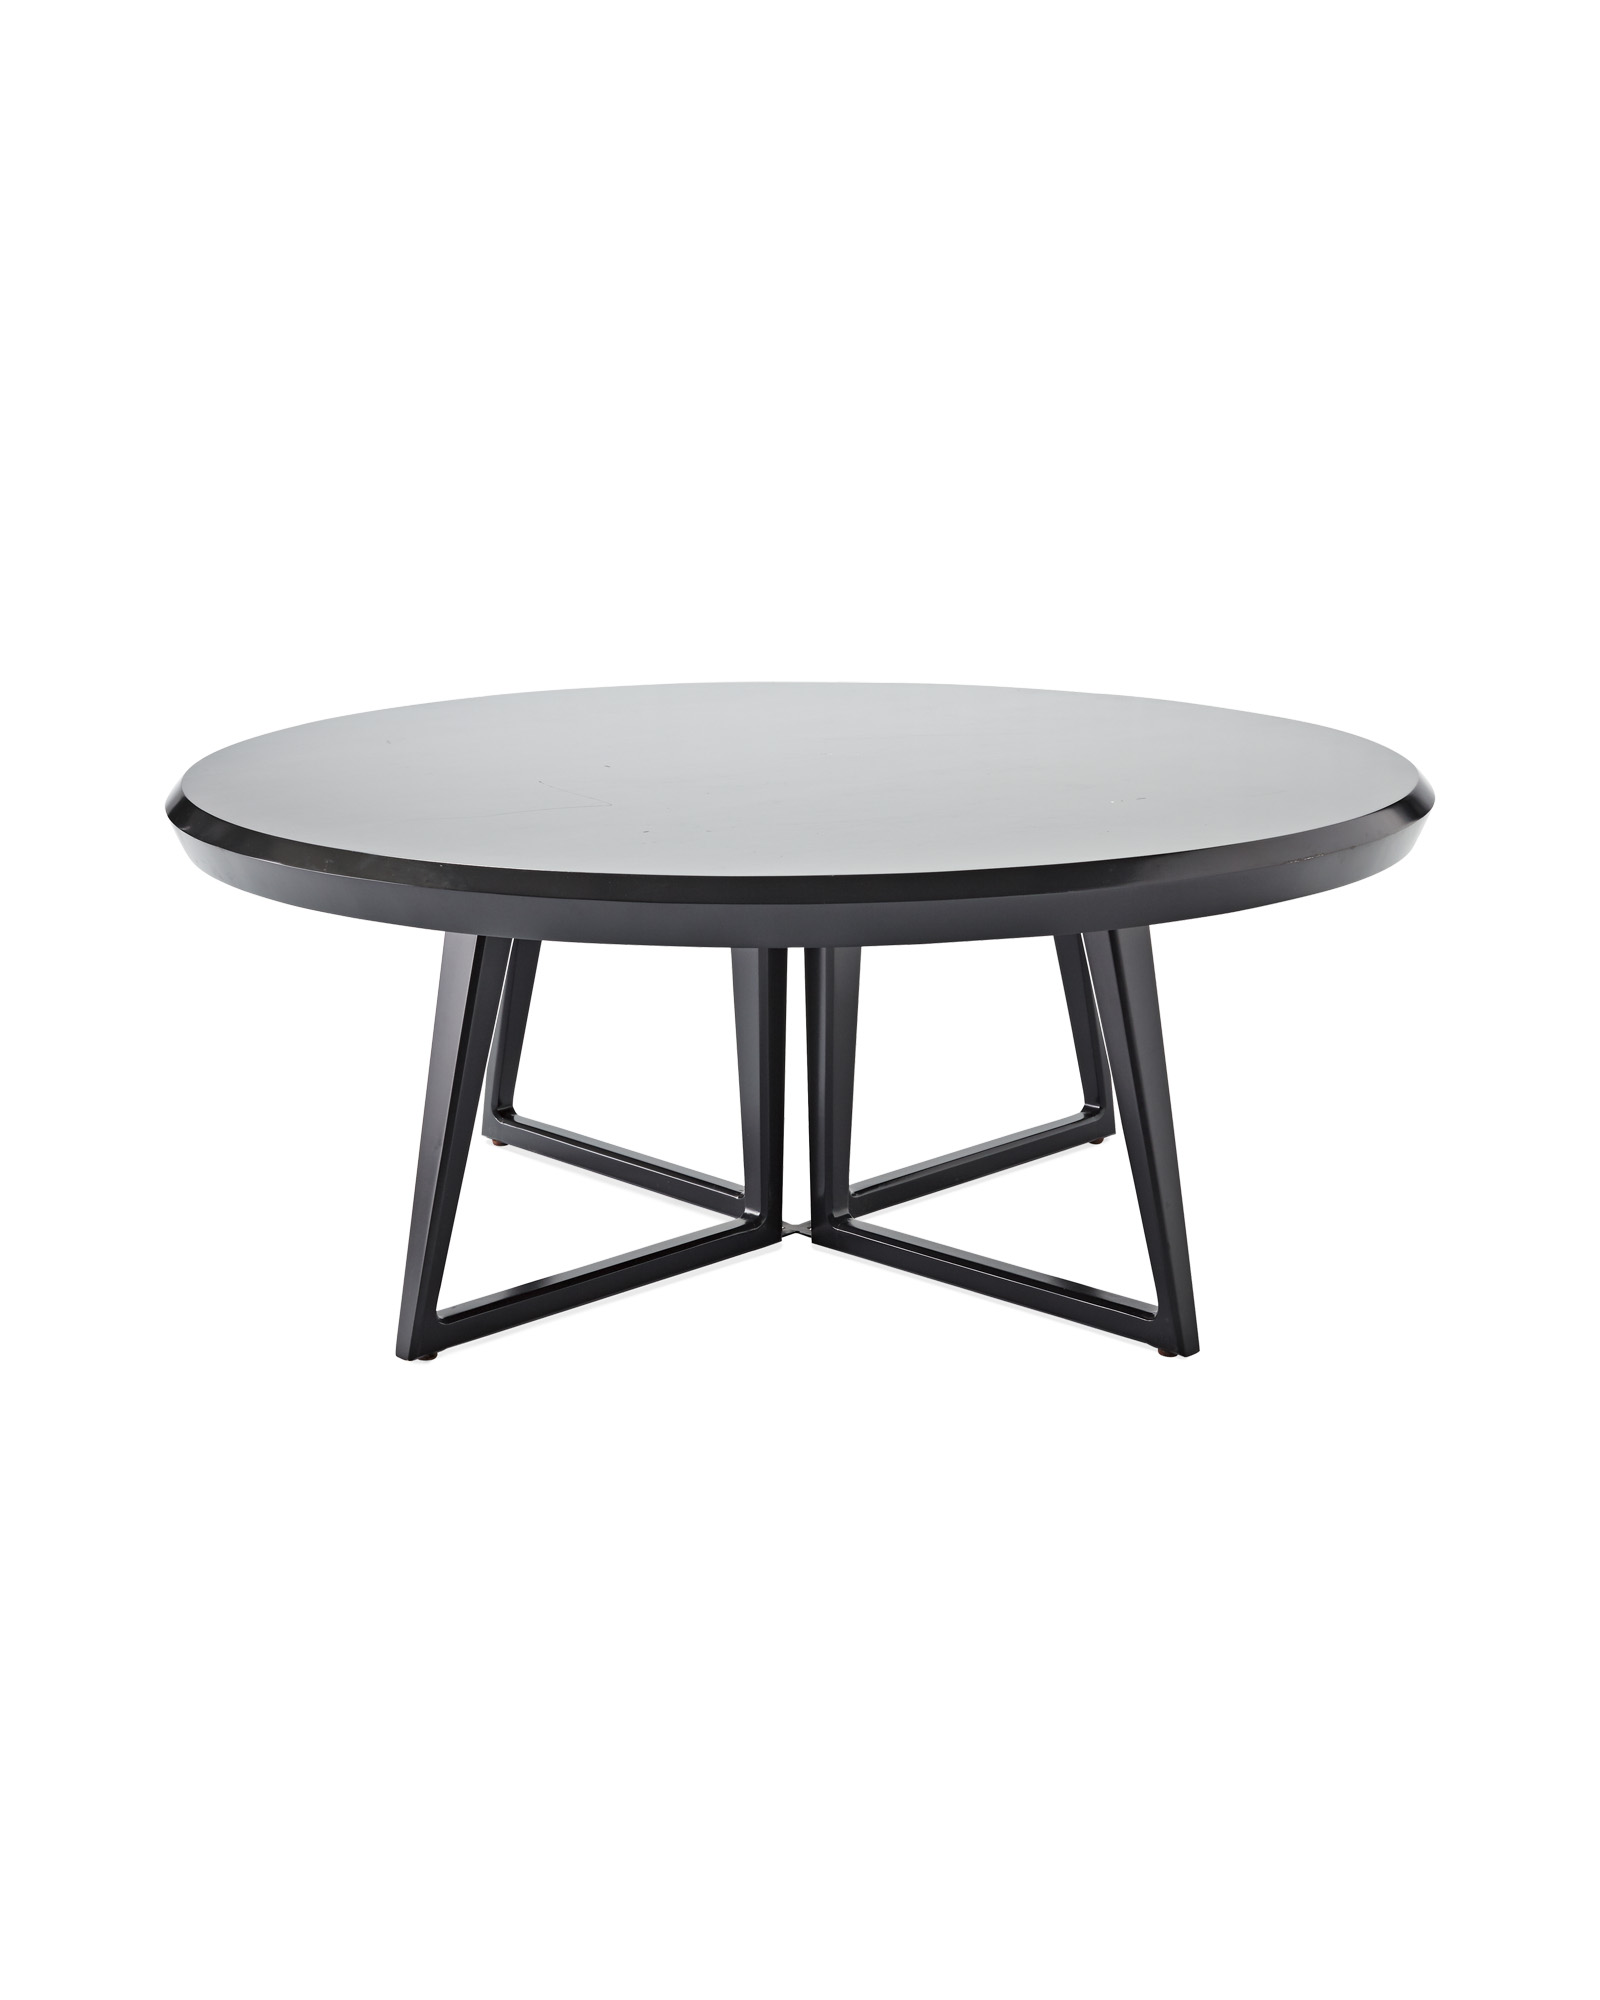 downing coffee table / $499